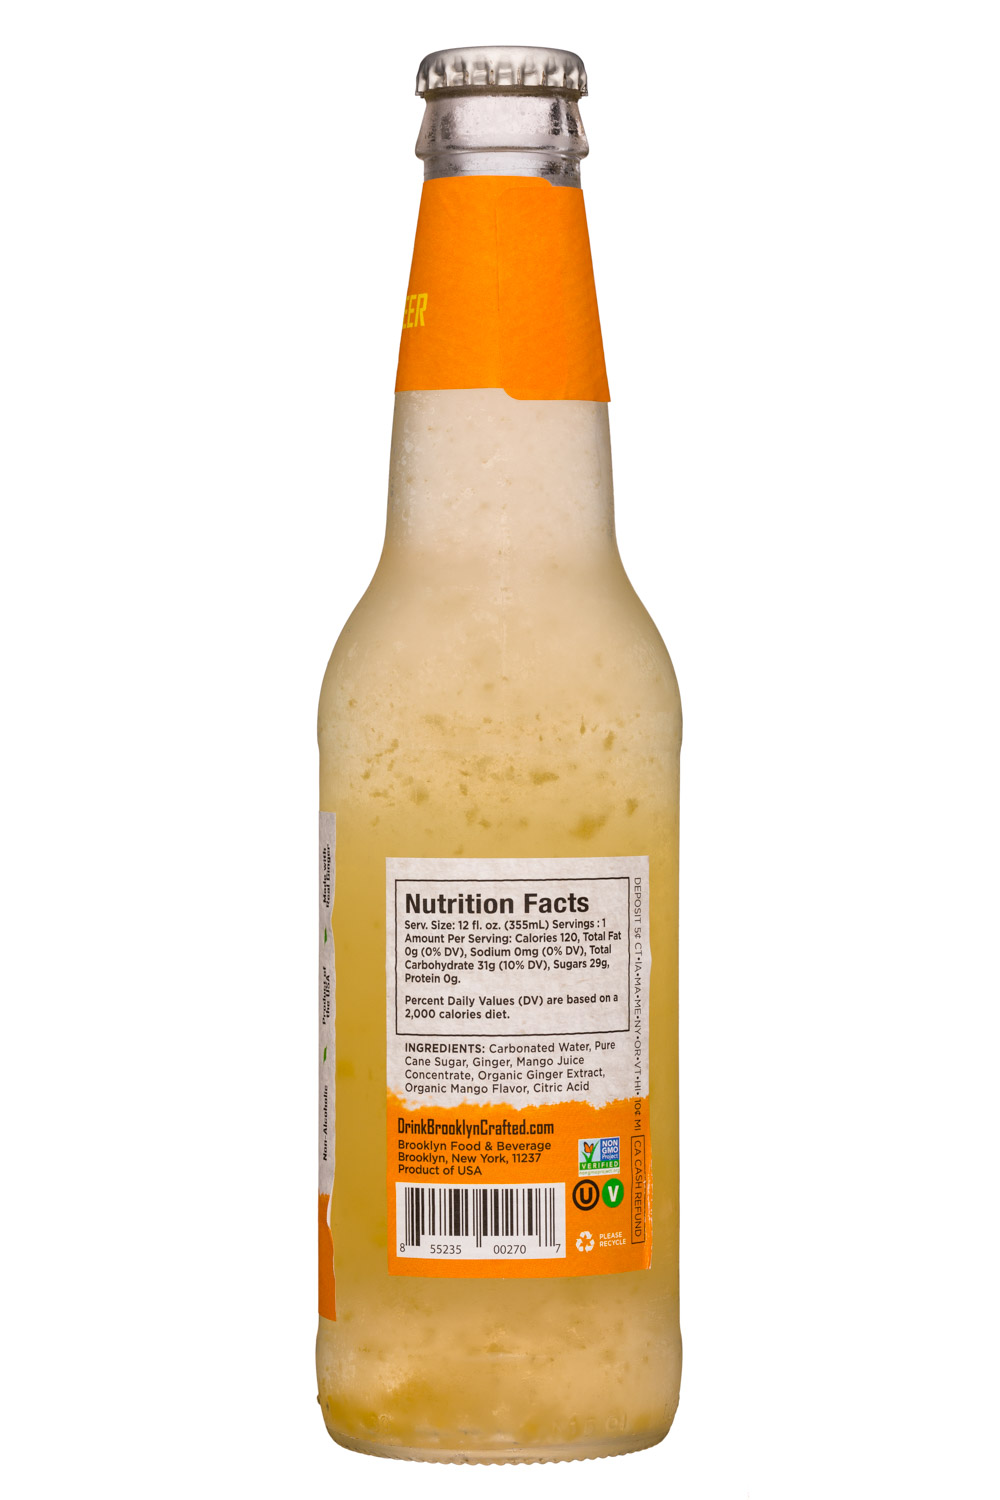 Brooklyn Crafted: BrooklynCrafted-12oz-GingerBeer-Mango-Facts